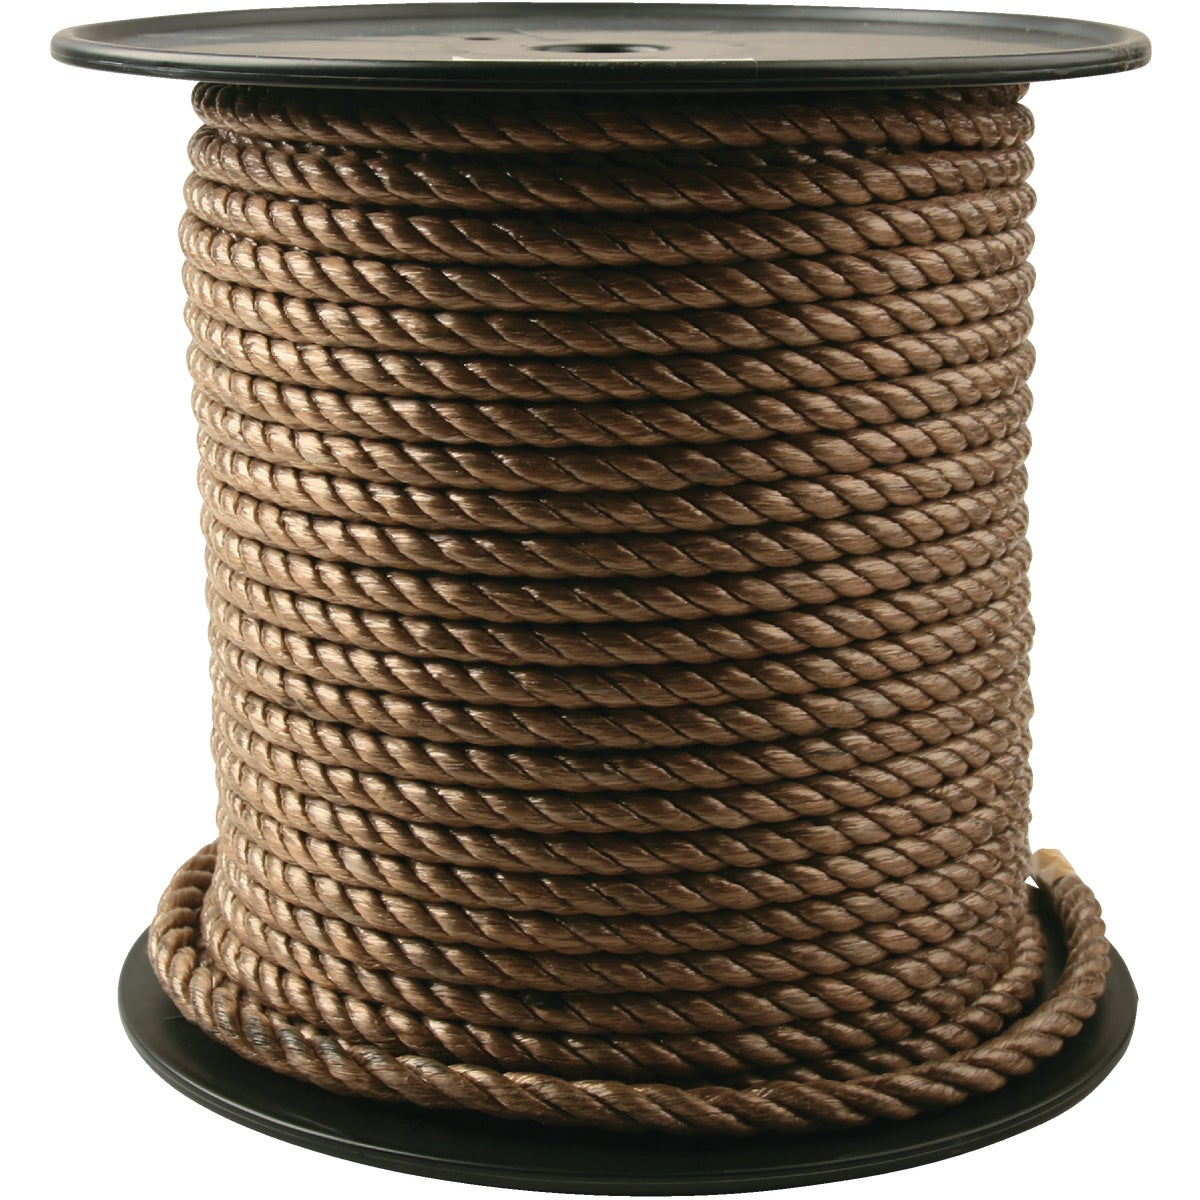 "3/8""X300' UNMANILA ROPE - 707430 by Do it Best"